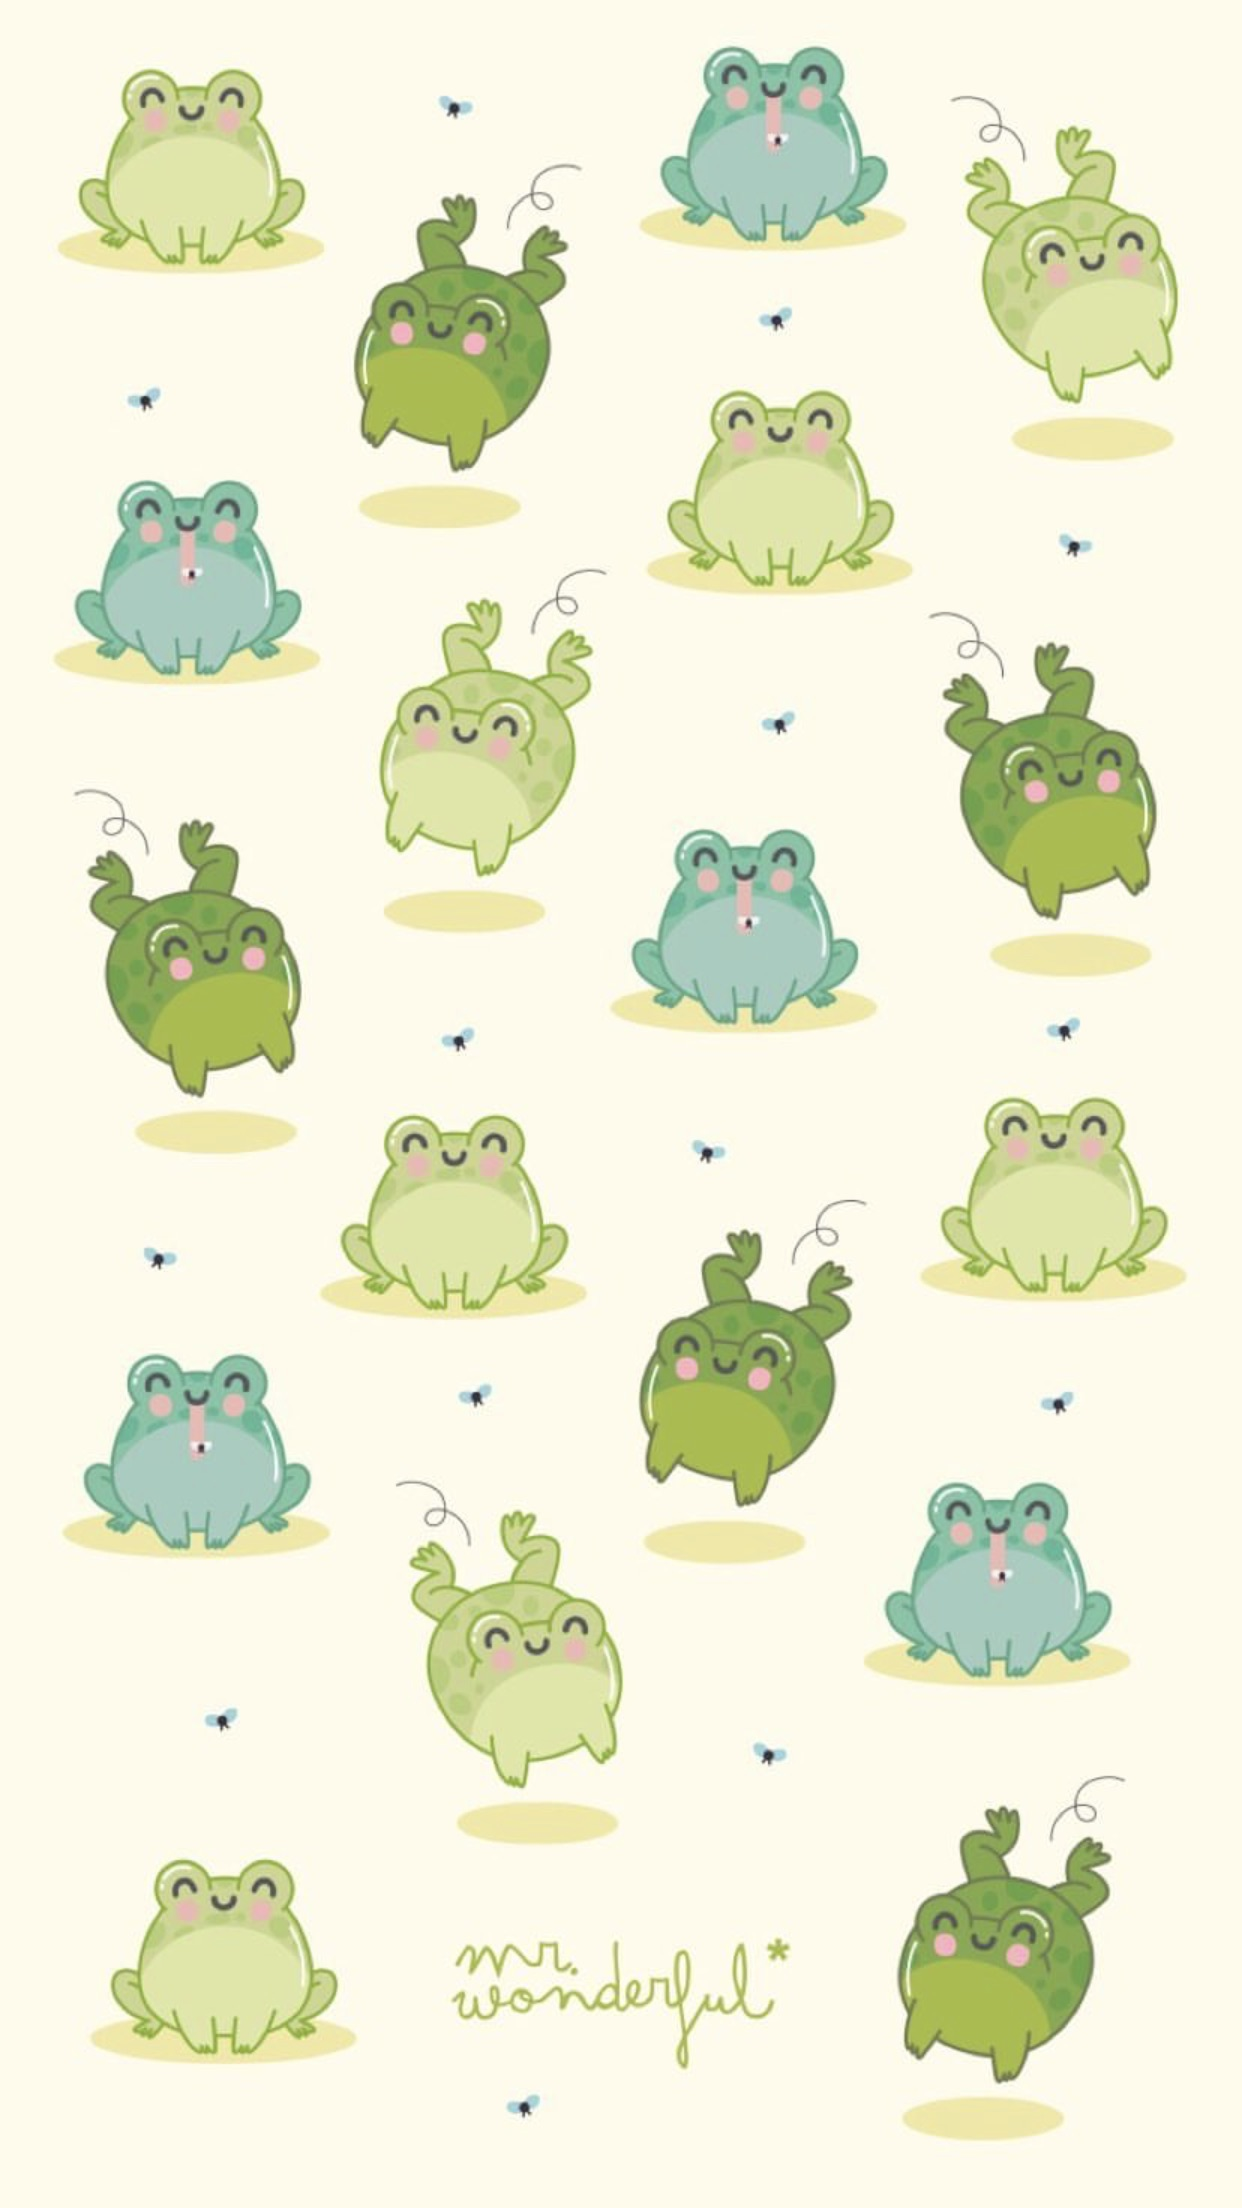 fondos de pantalla, fondo de pantalla, fondo de pantalla divertido, fondo de pantalla femenino, girly backgrounds, cool background, colorful backfround, fondo de pantalla patron, pattern, fondo de pantalla de ranas, frog background.